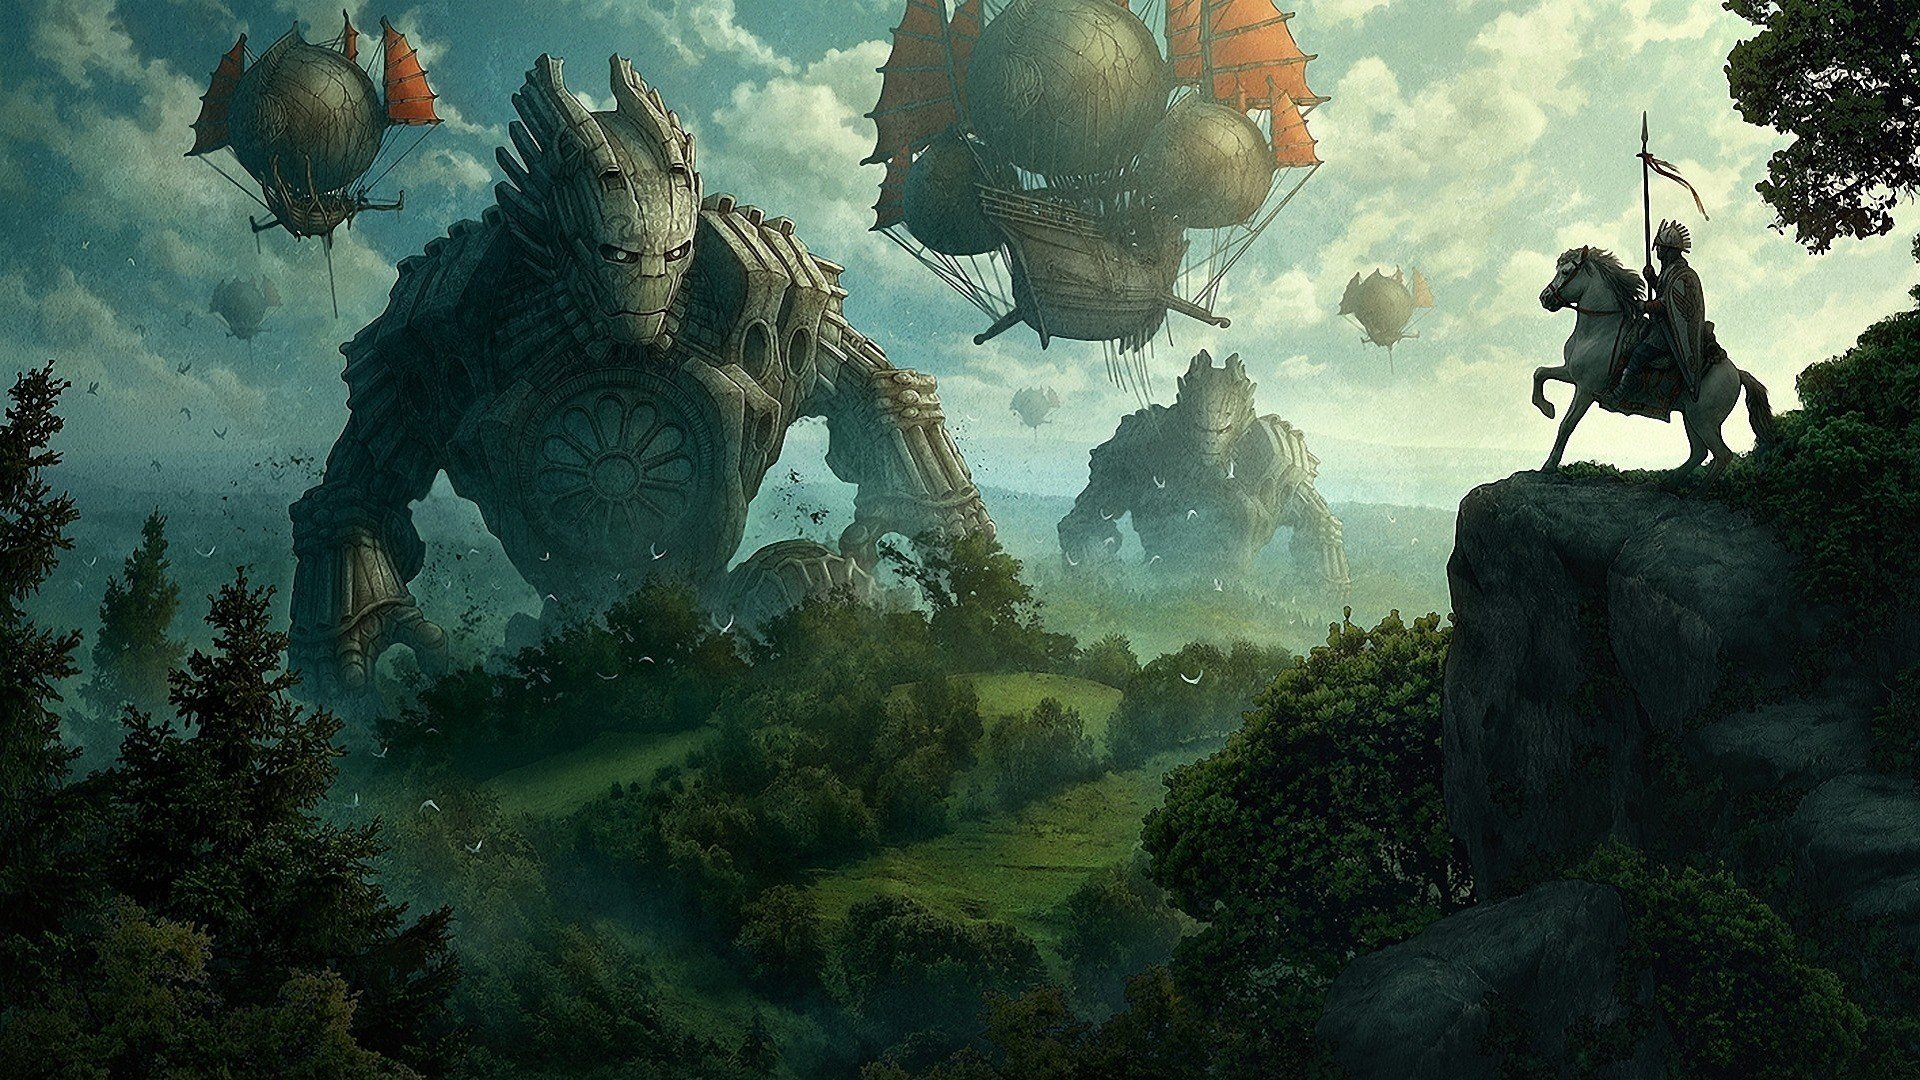 artwork medieval zeppelin air balloons skyscapes wallpaper background 1920x1080